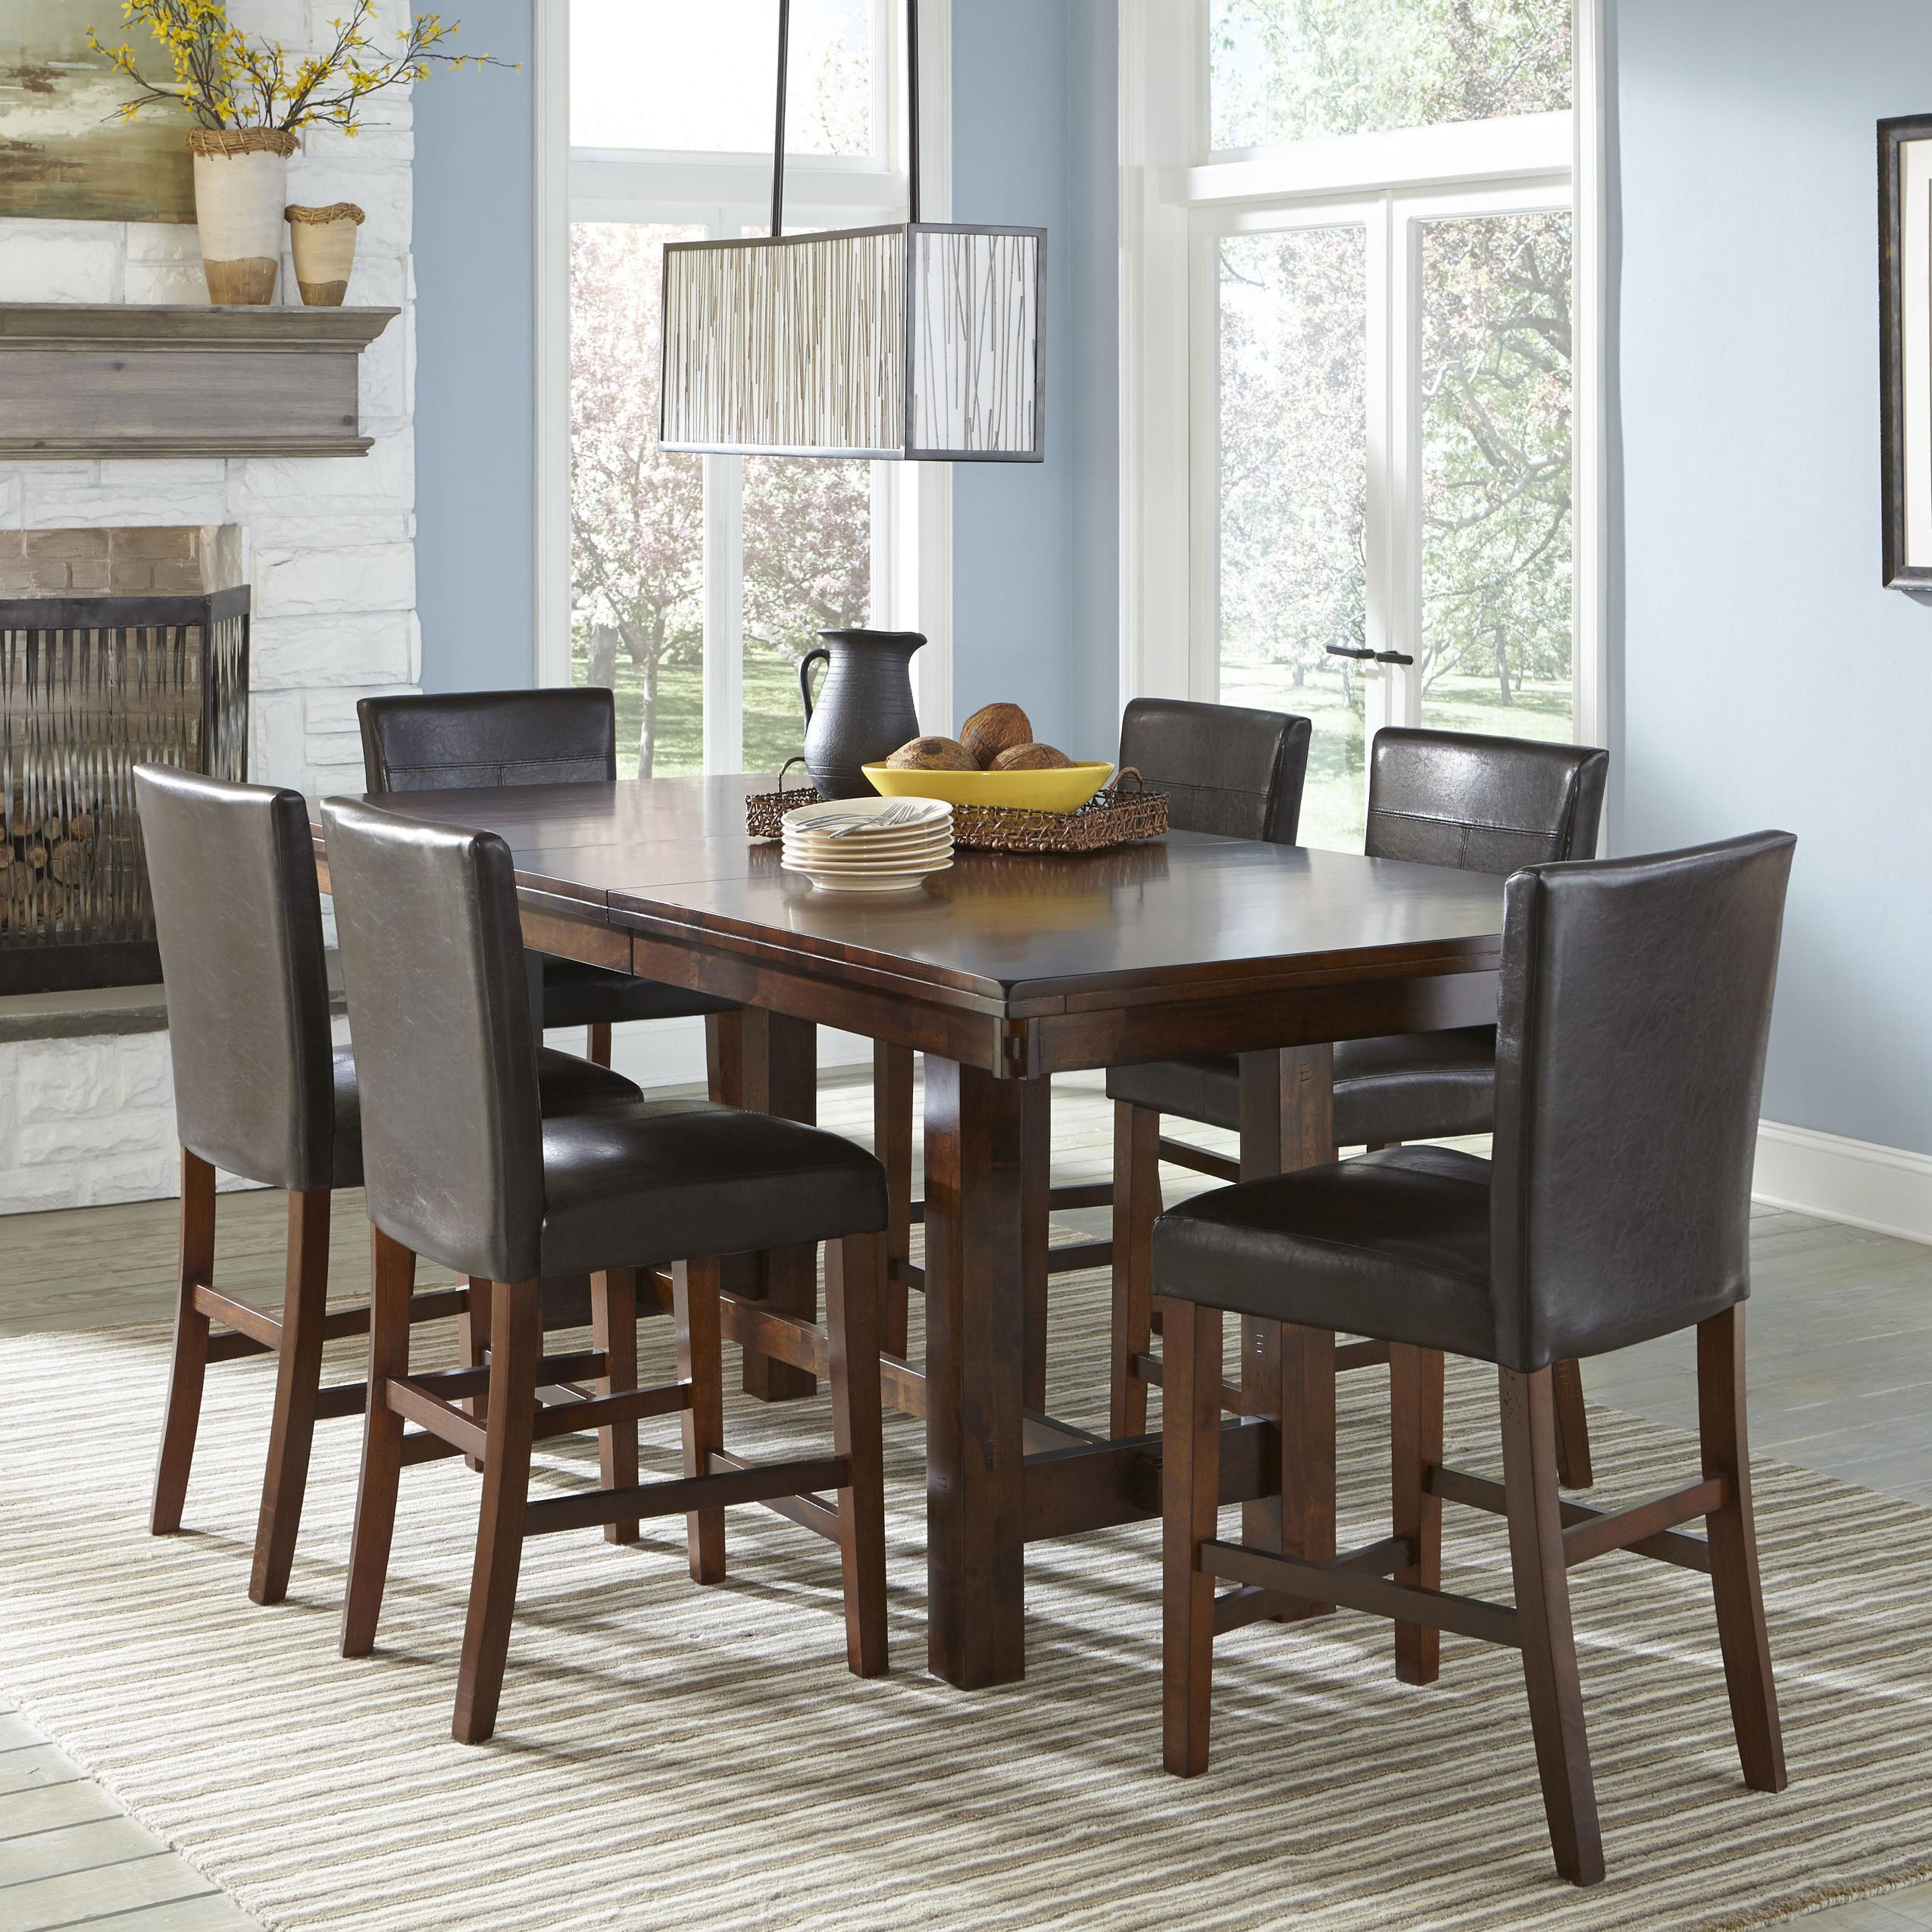 Intercon Kona Counter Height Table with Leaf | Wayside Furniture ...